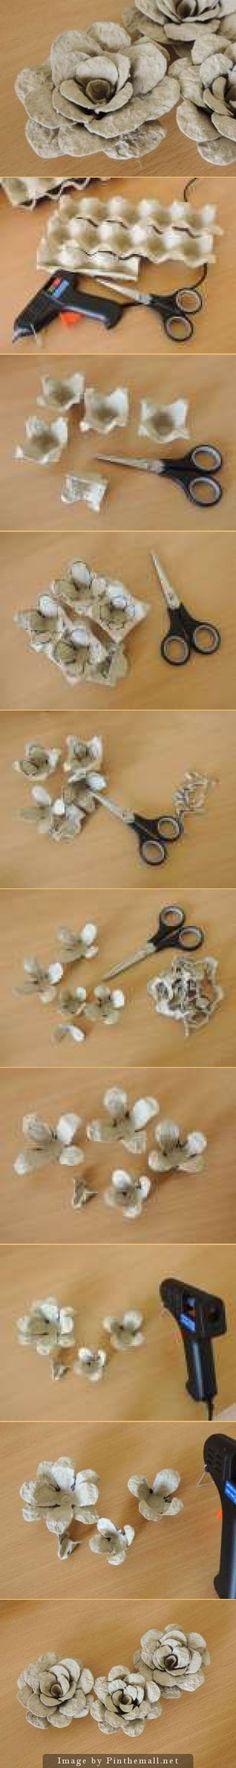 The whole detailed photo tutorial on how to make these egg carton flowers - Tuto. - - The whole detailed photo tutorial on how to make these egg carton flowers – Tutorial foto: trandafiri din cofraje de ouă Handmade Flowers, Diy Flowers, Fabric Flowers, Paper Flowers, Hobbies And Crafts, Diy And Crafts, Crafts For Kids, Arts And Crafts, Upcycled Crafts